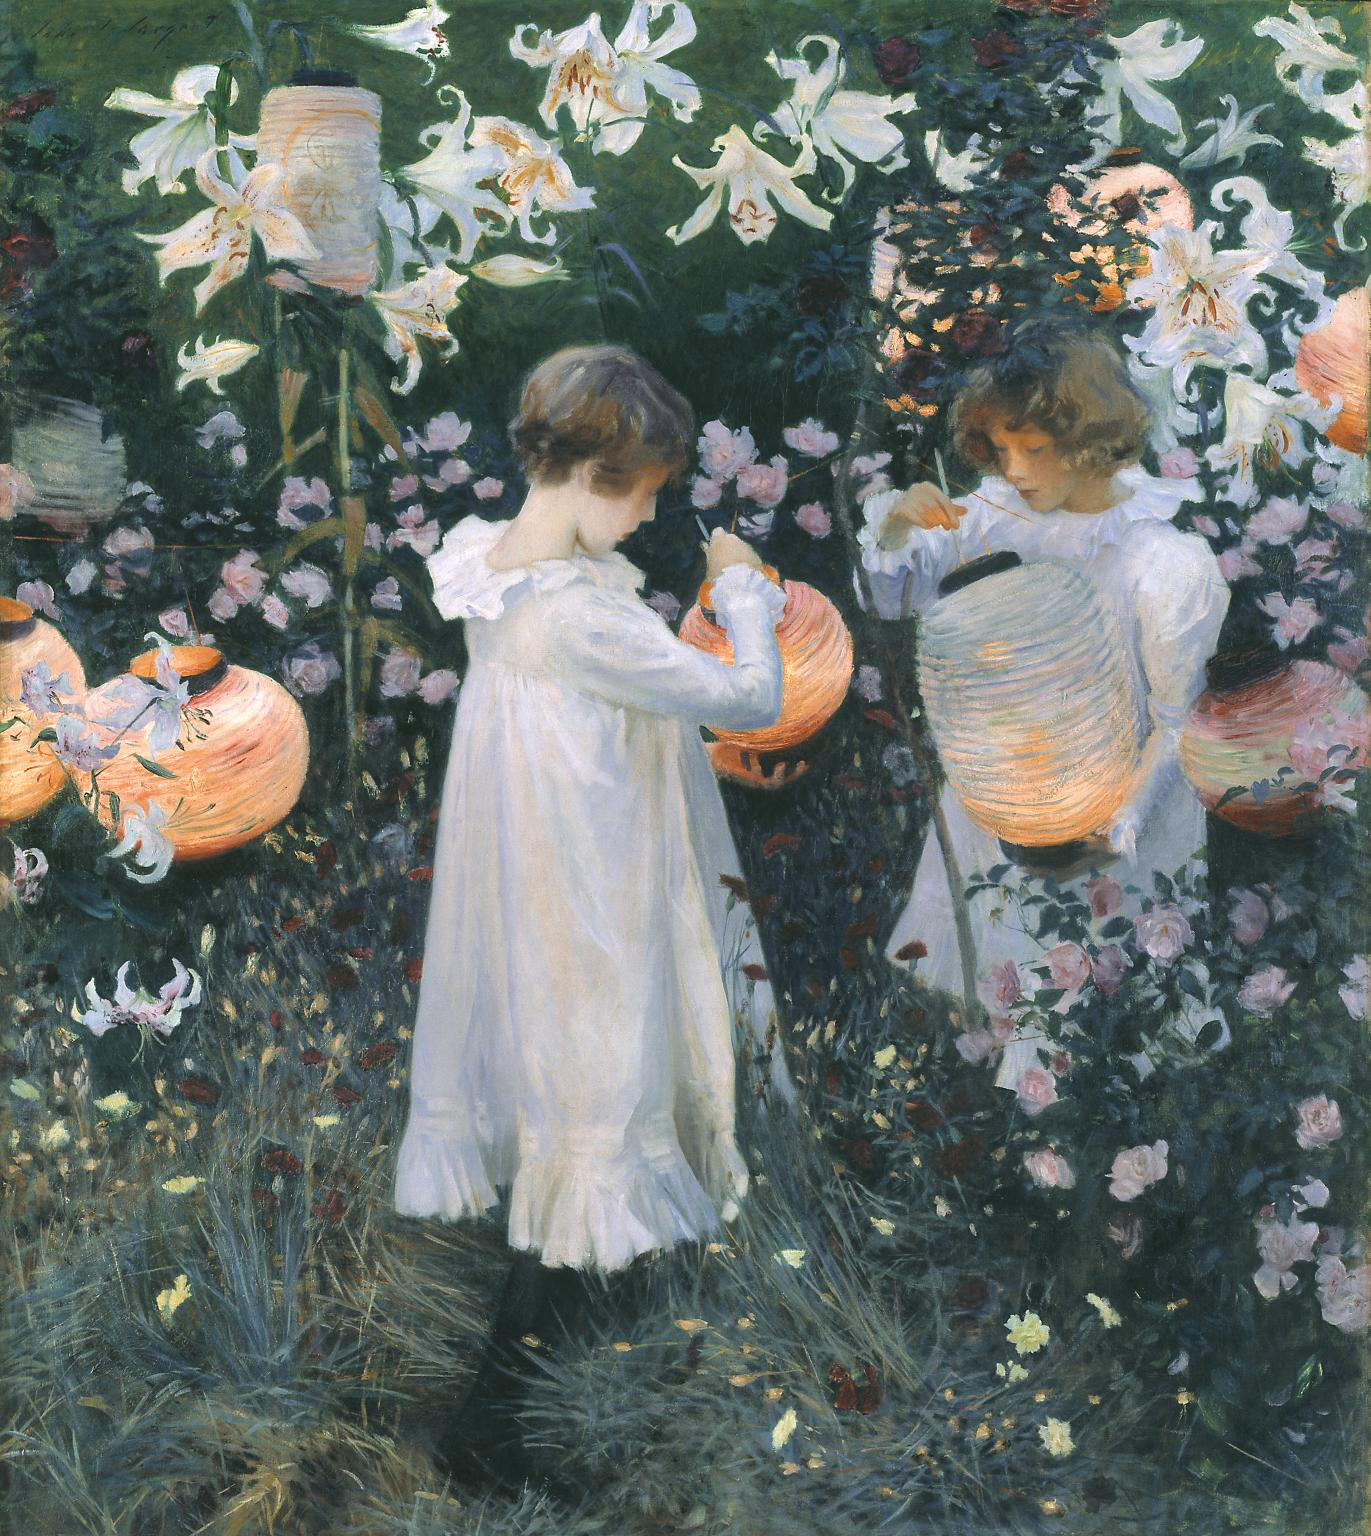 Carnation, Lily, Lily, Rose, by John Singer Sargent 1885-6